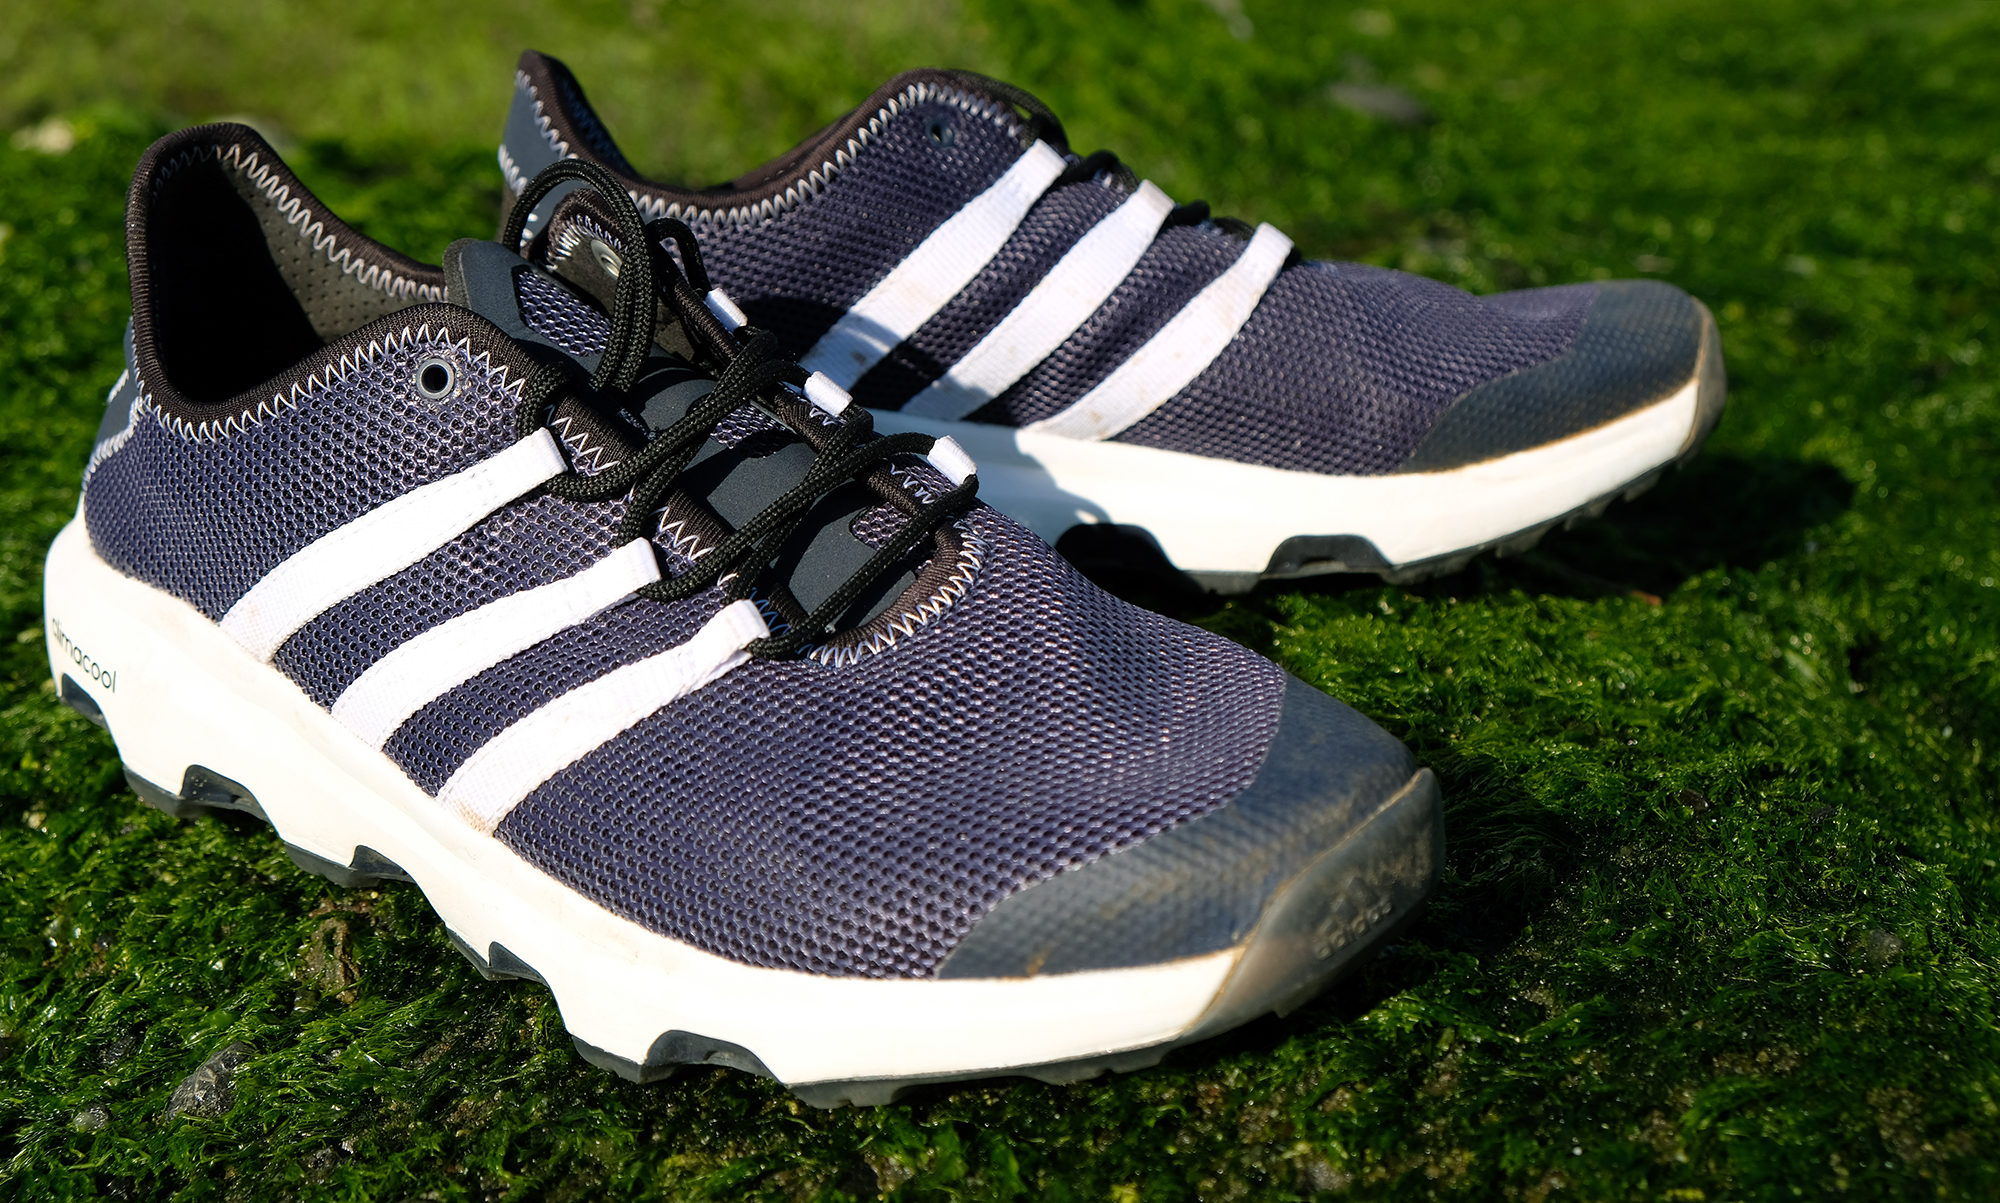 Adidas Terrex Voyager Shoes